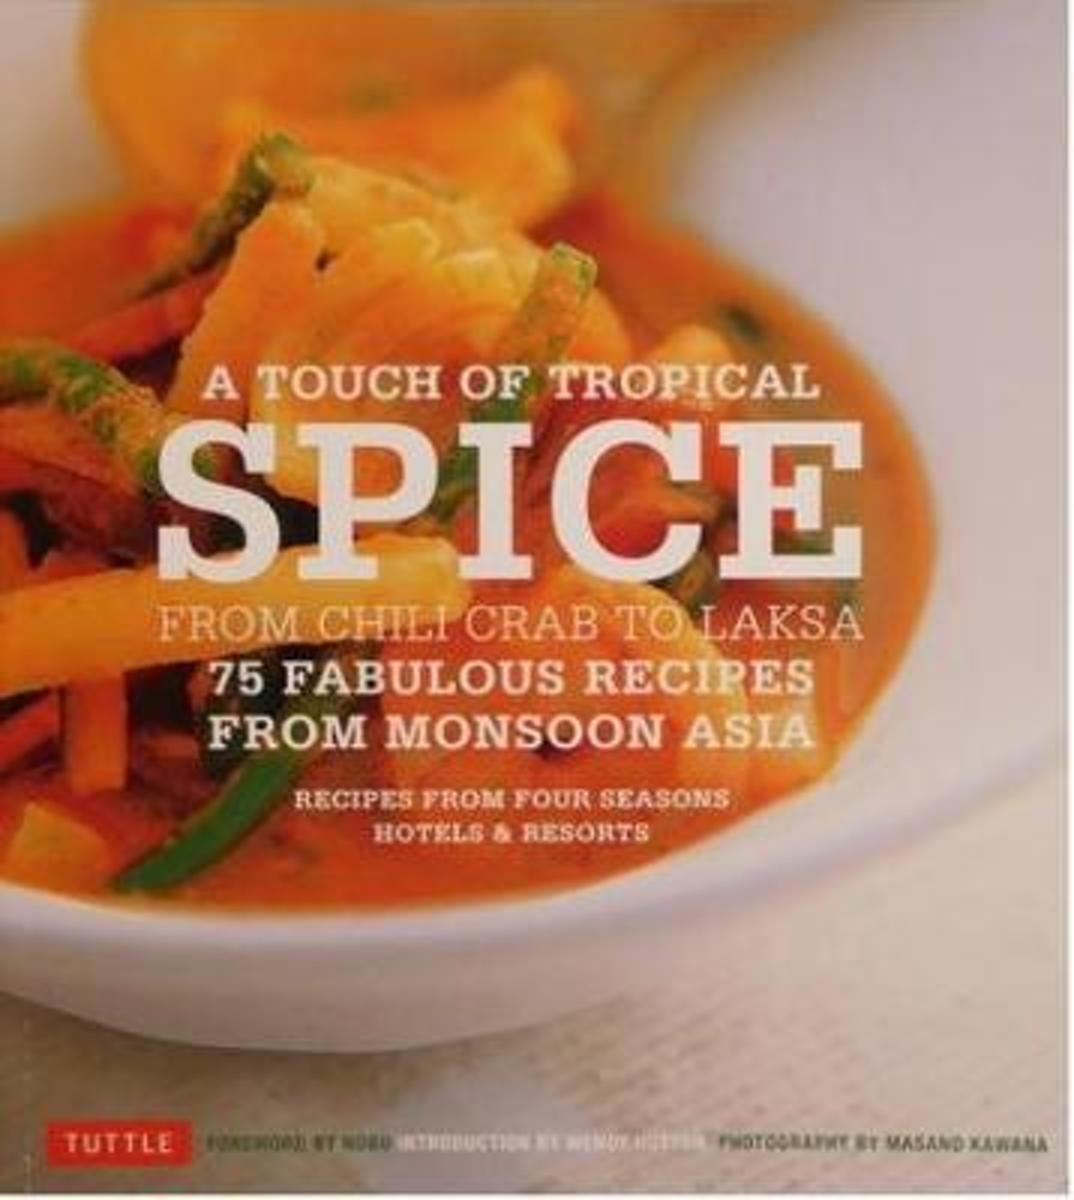 A Touch of Tropical Spice 75 Fabulous Recipes From Asia